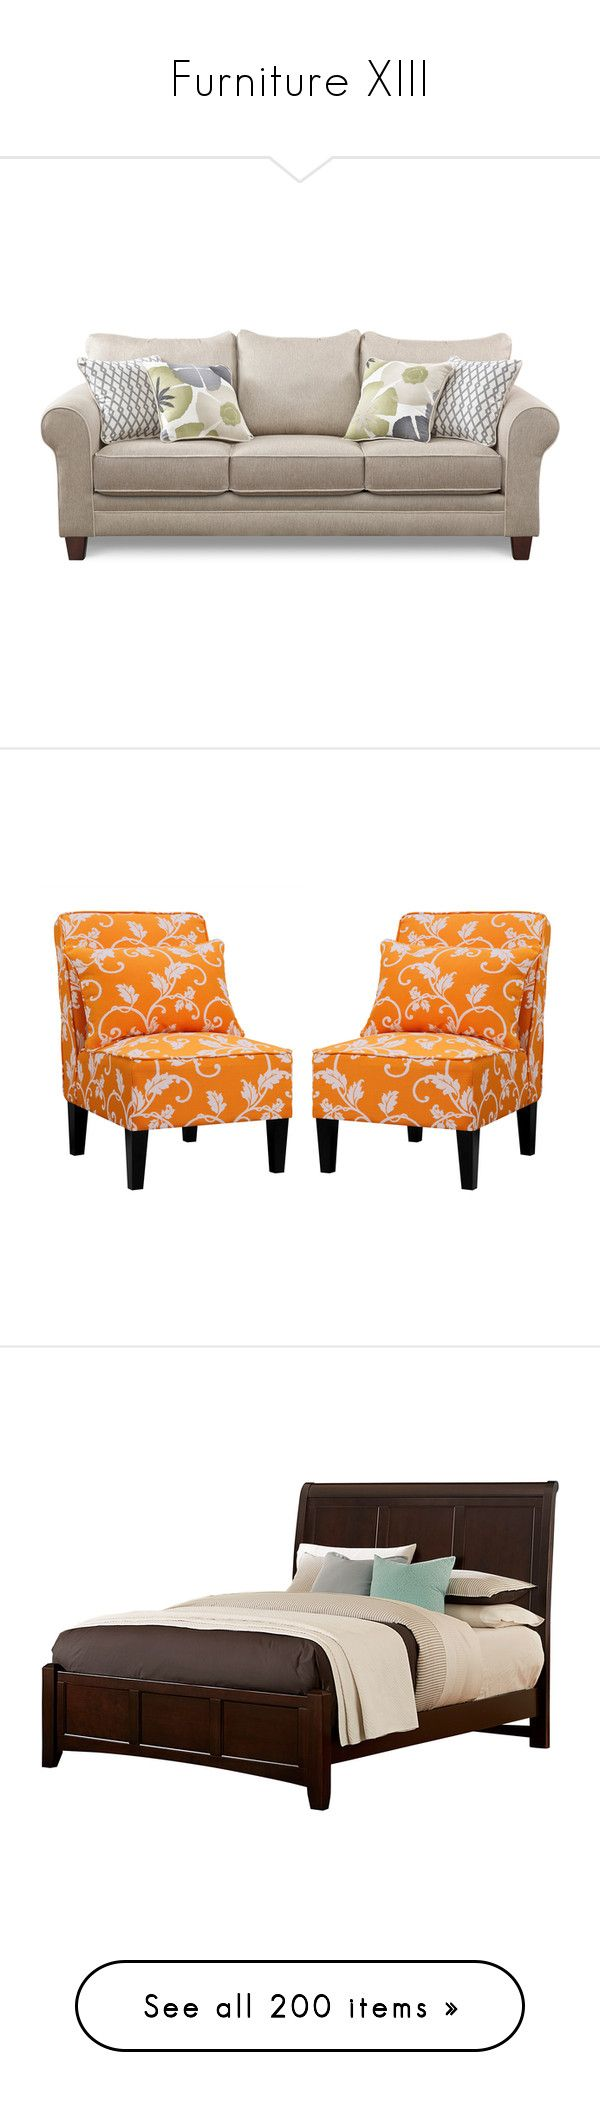 """""""Furniture XIII"""" by vanjazaric6886 ❤ liked on Polyvore featuring home, furniture, chairs, orange furniture, pair chairs, set of 2 chairs, armless furniture, set of two chairs, beds and cherrywood furniture"""